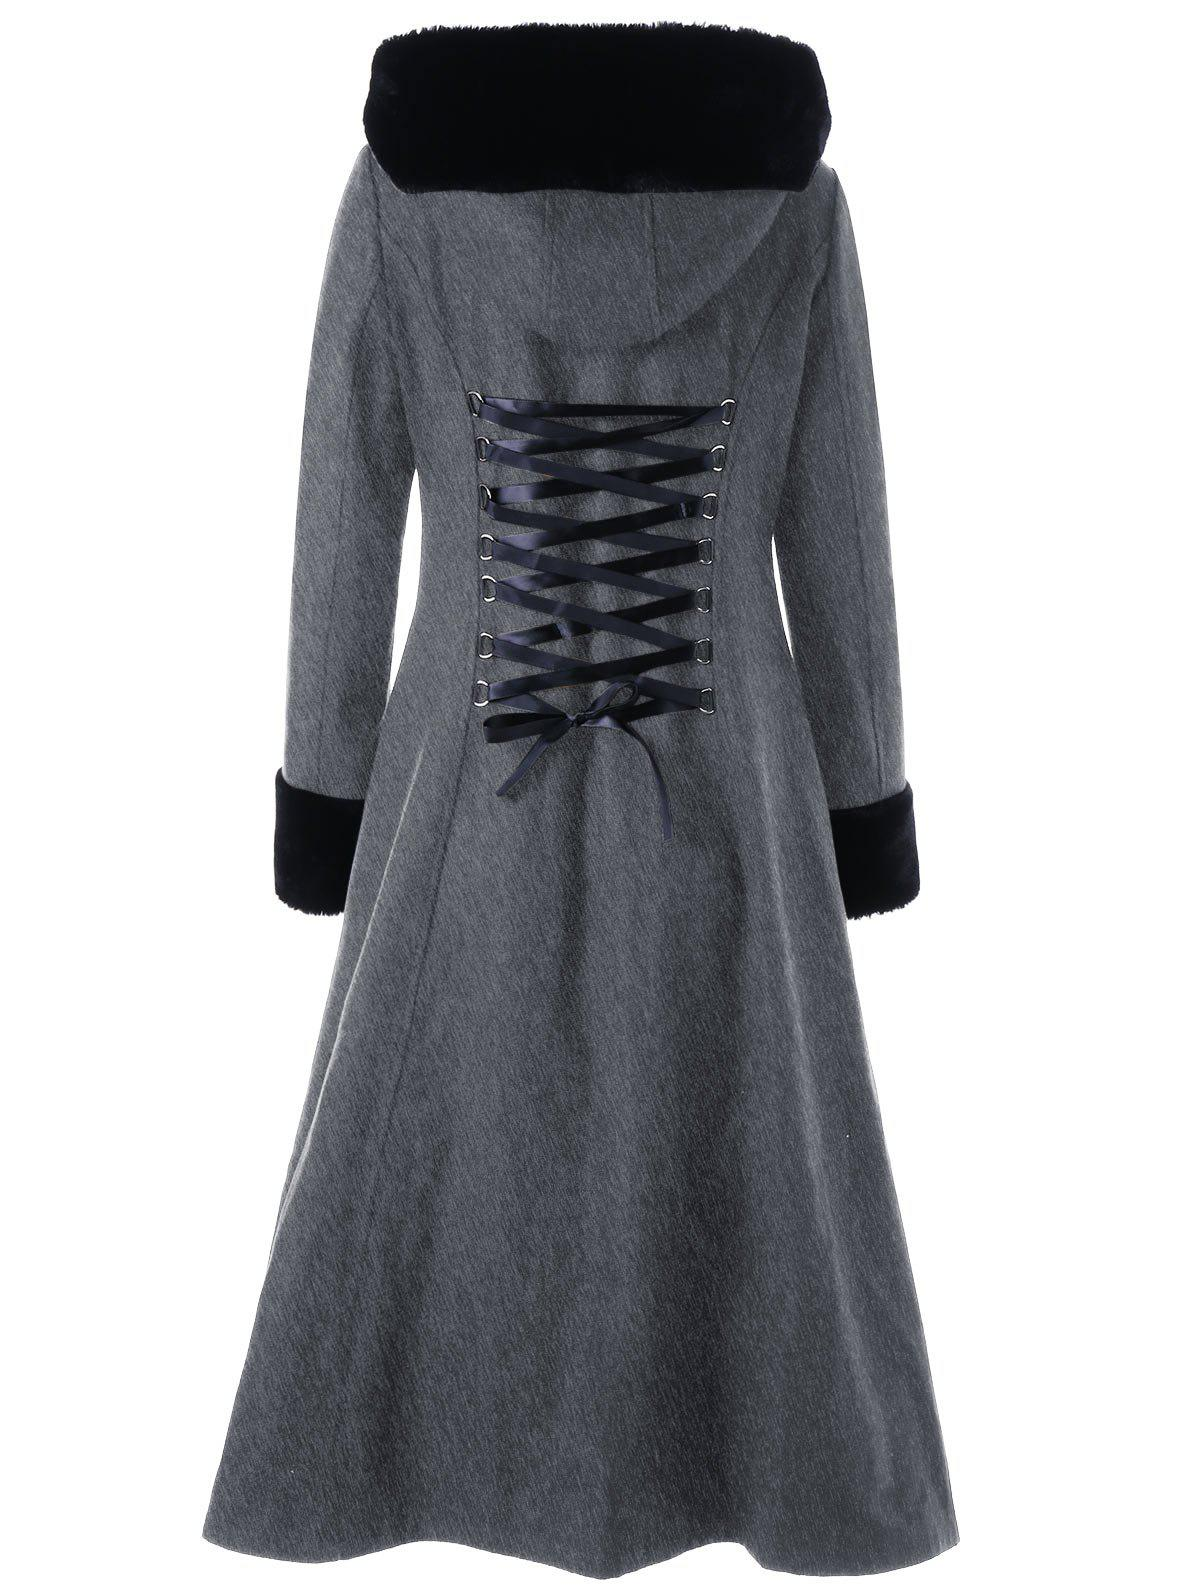 New Hooded Longline Lace Up Coat